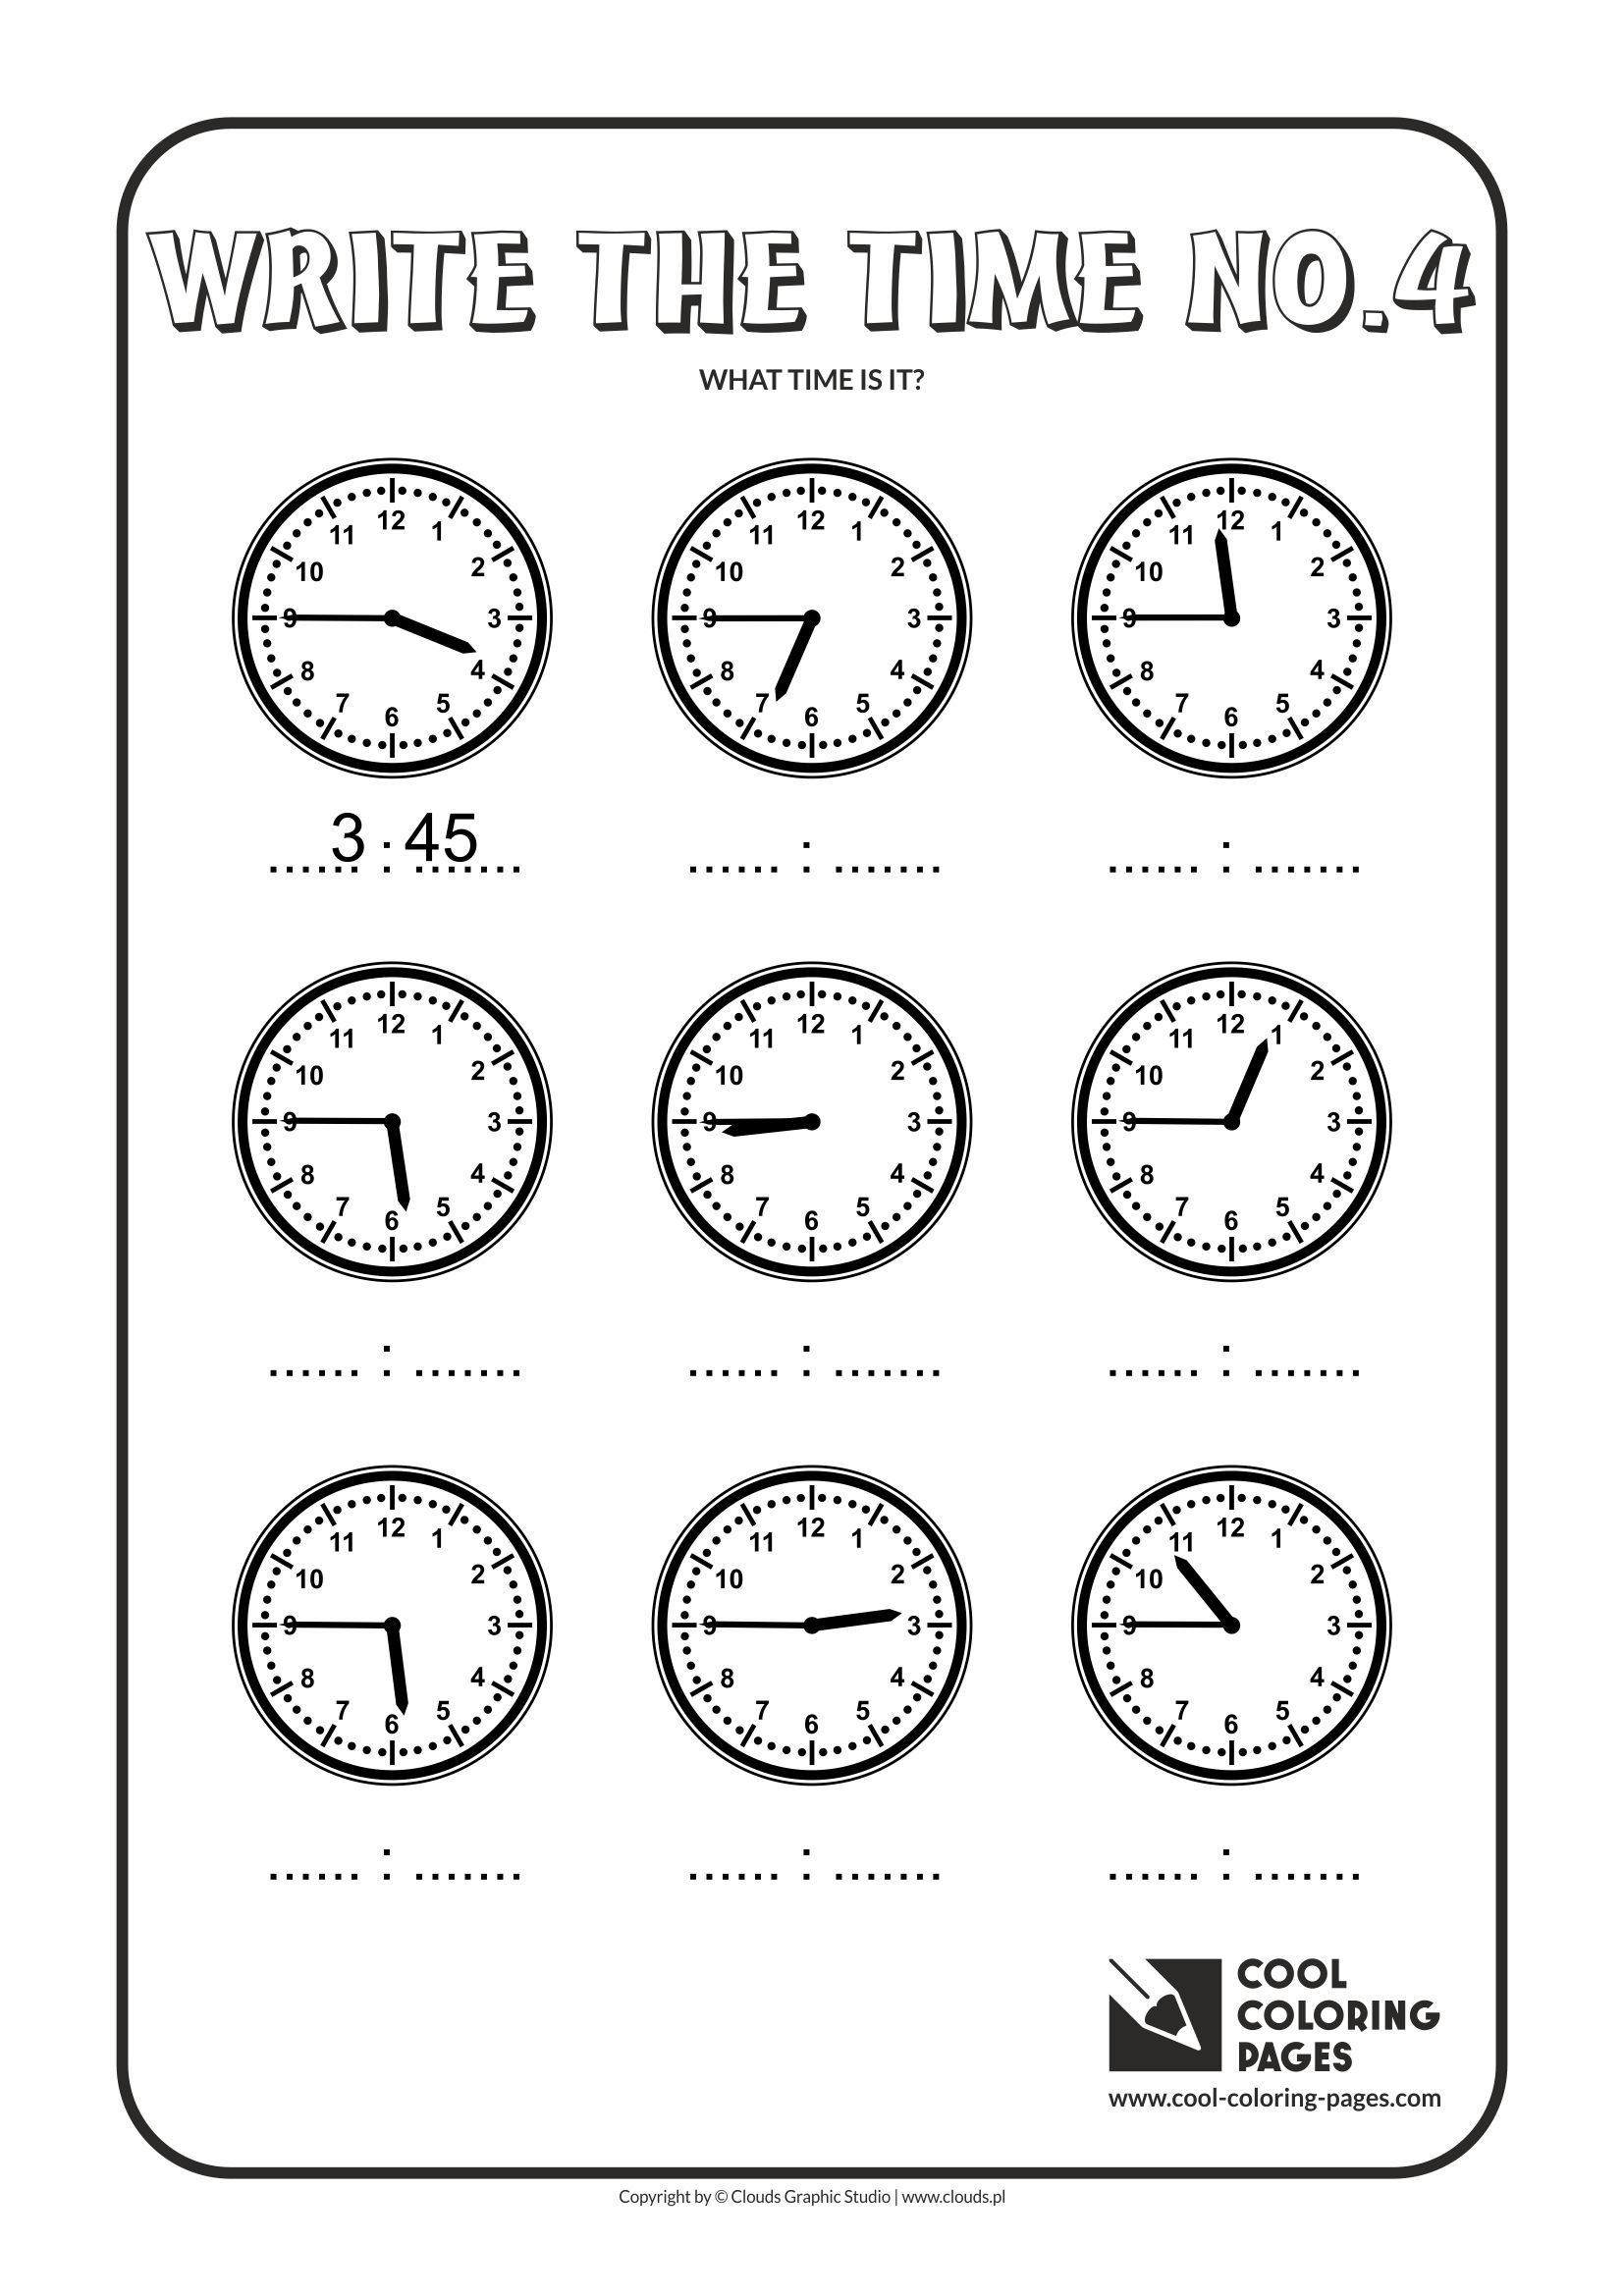 repeating timer no4